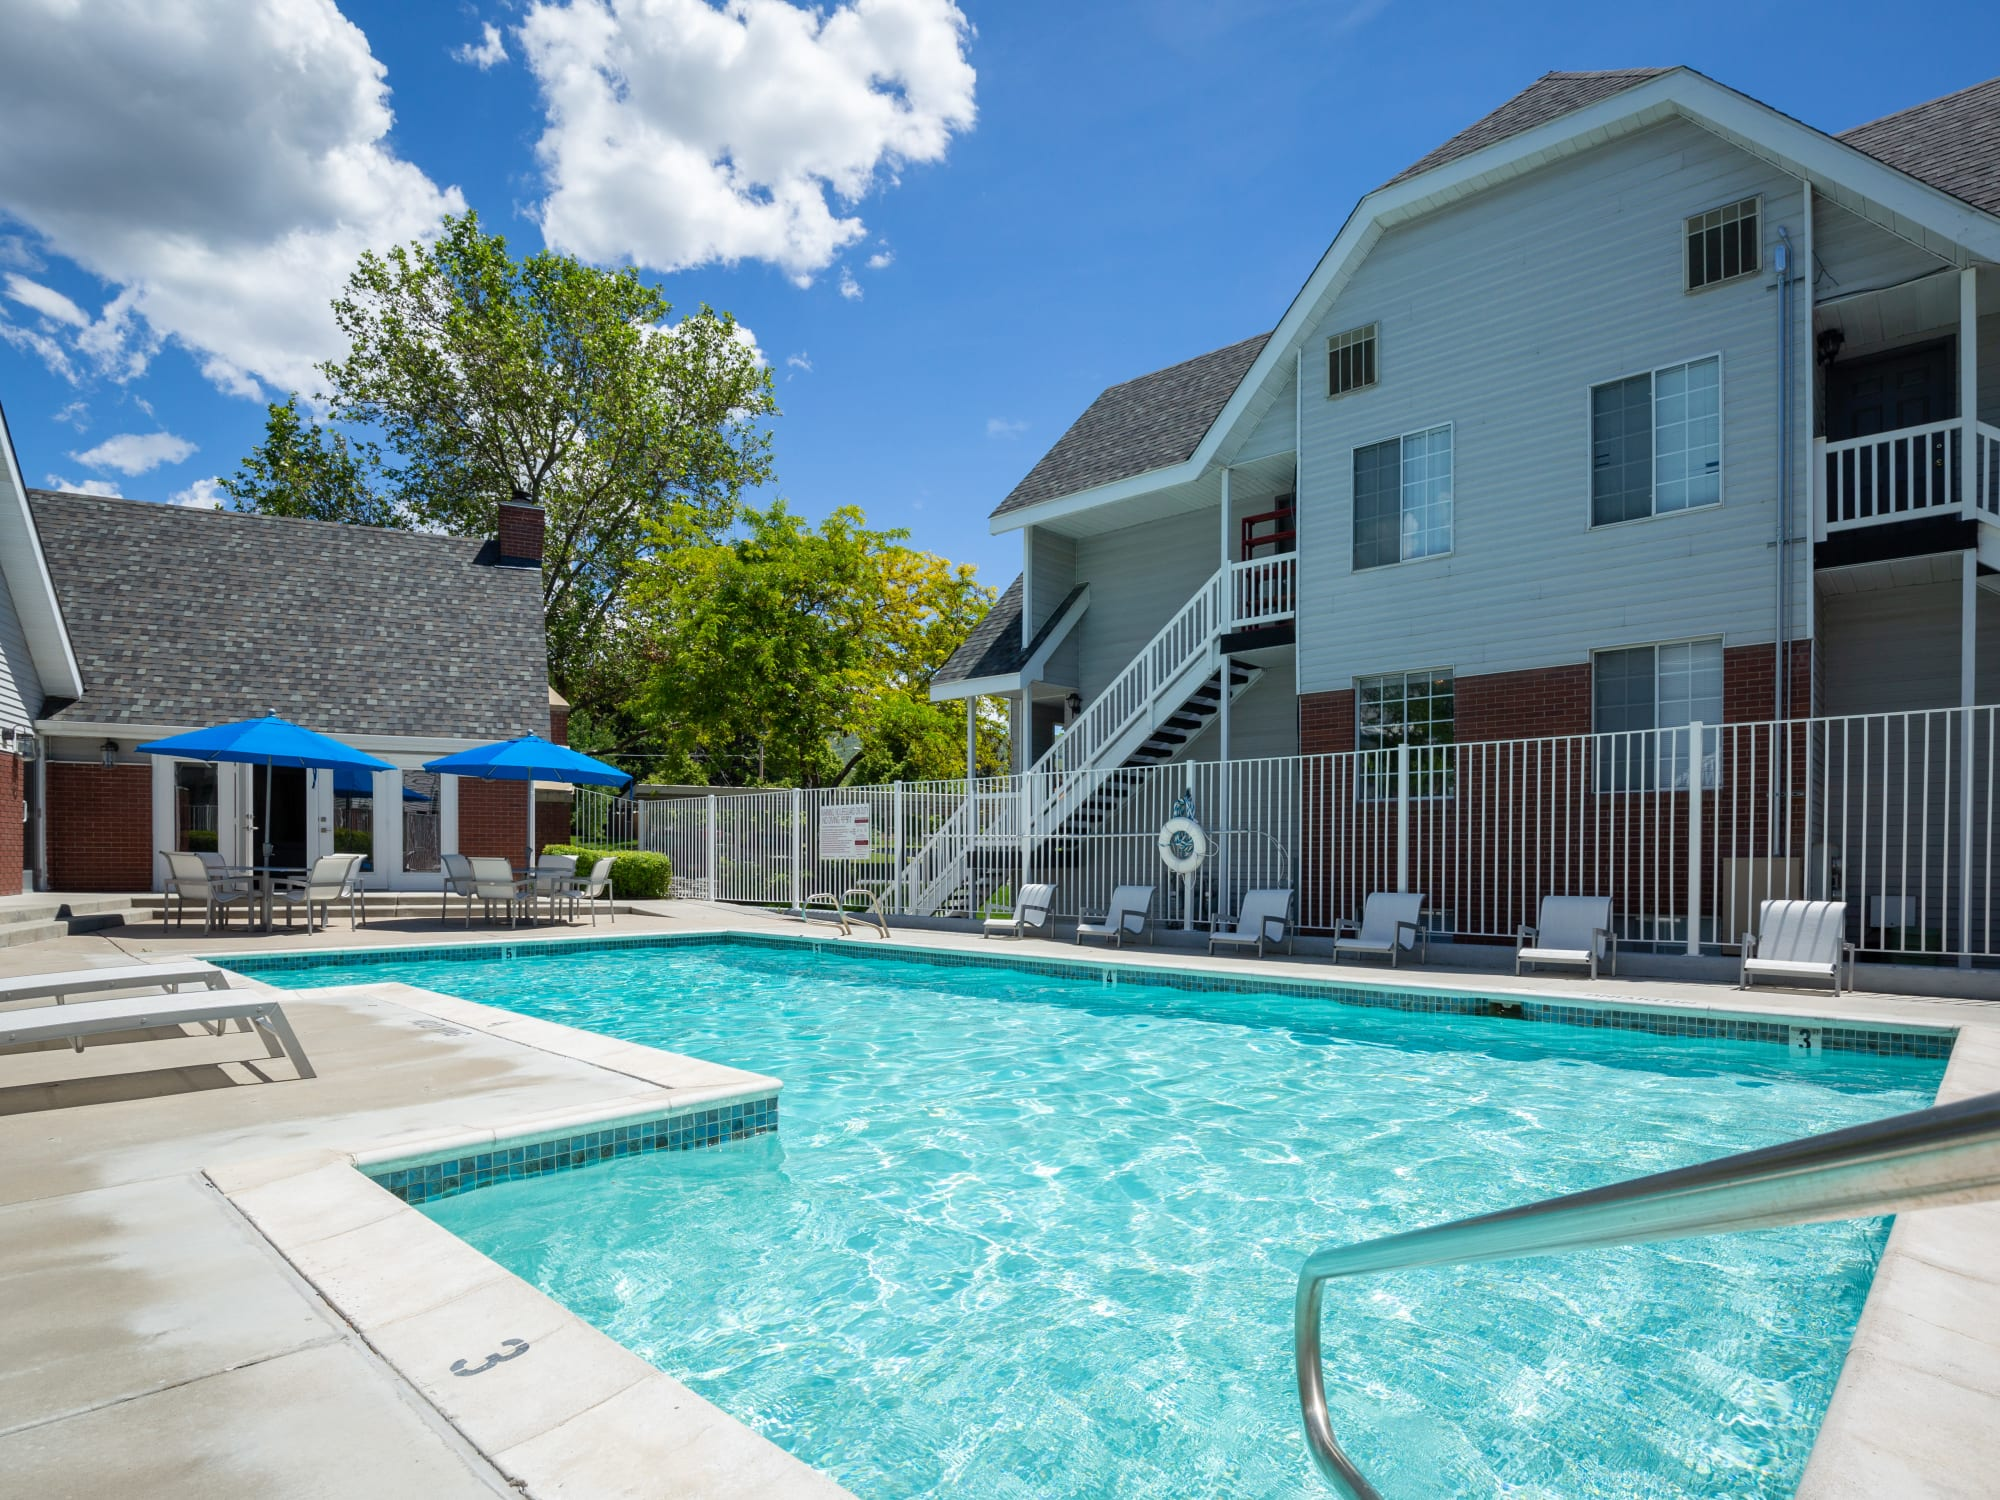 Sparkling Pool View with lounge chairs and umbrellas in Bountiful, Utah